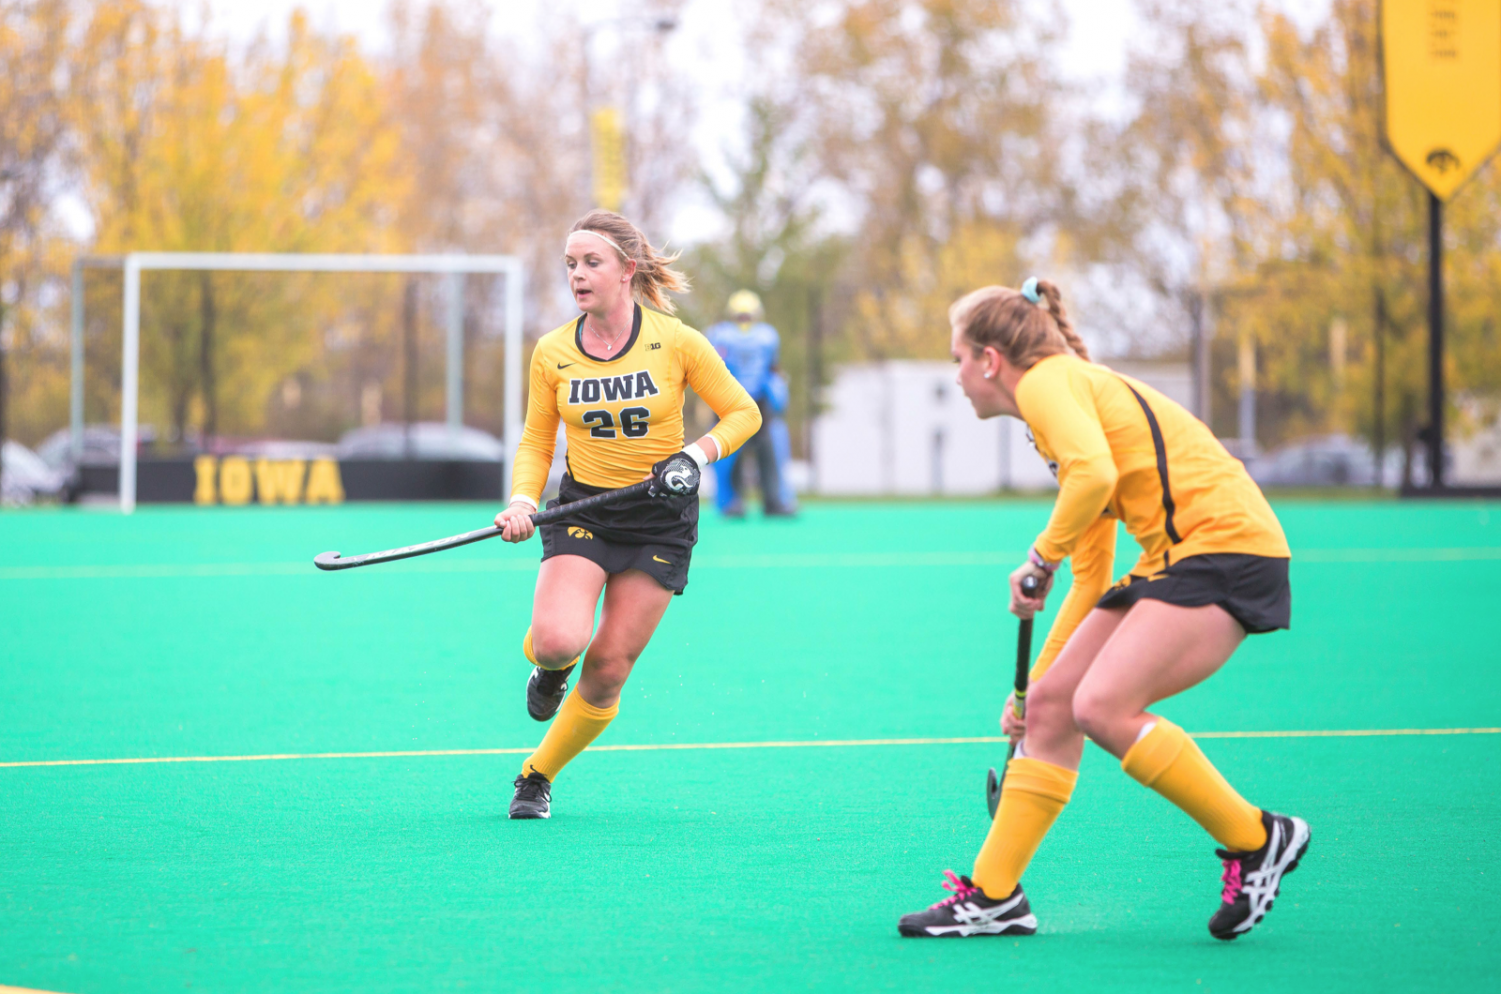 Iowa field-hockey forward Maddy Murphy looks toward the sideline against Michigan on Oct. 15, 2017.  The Wolverines defeated the Hawkeyes, 3-2.